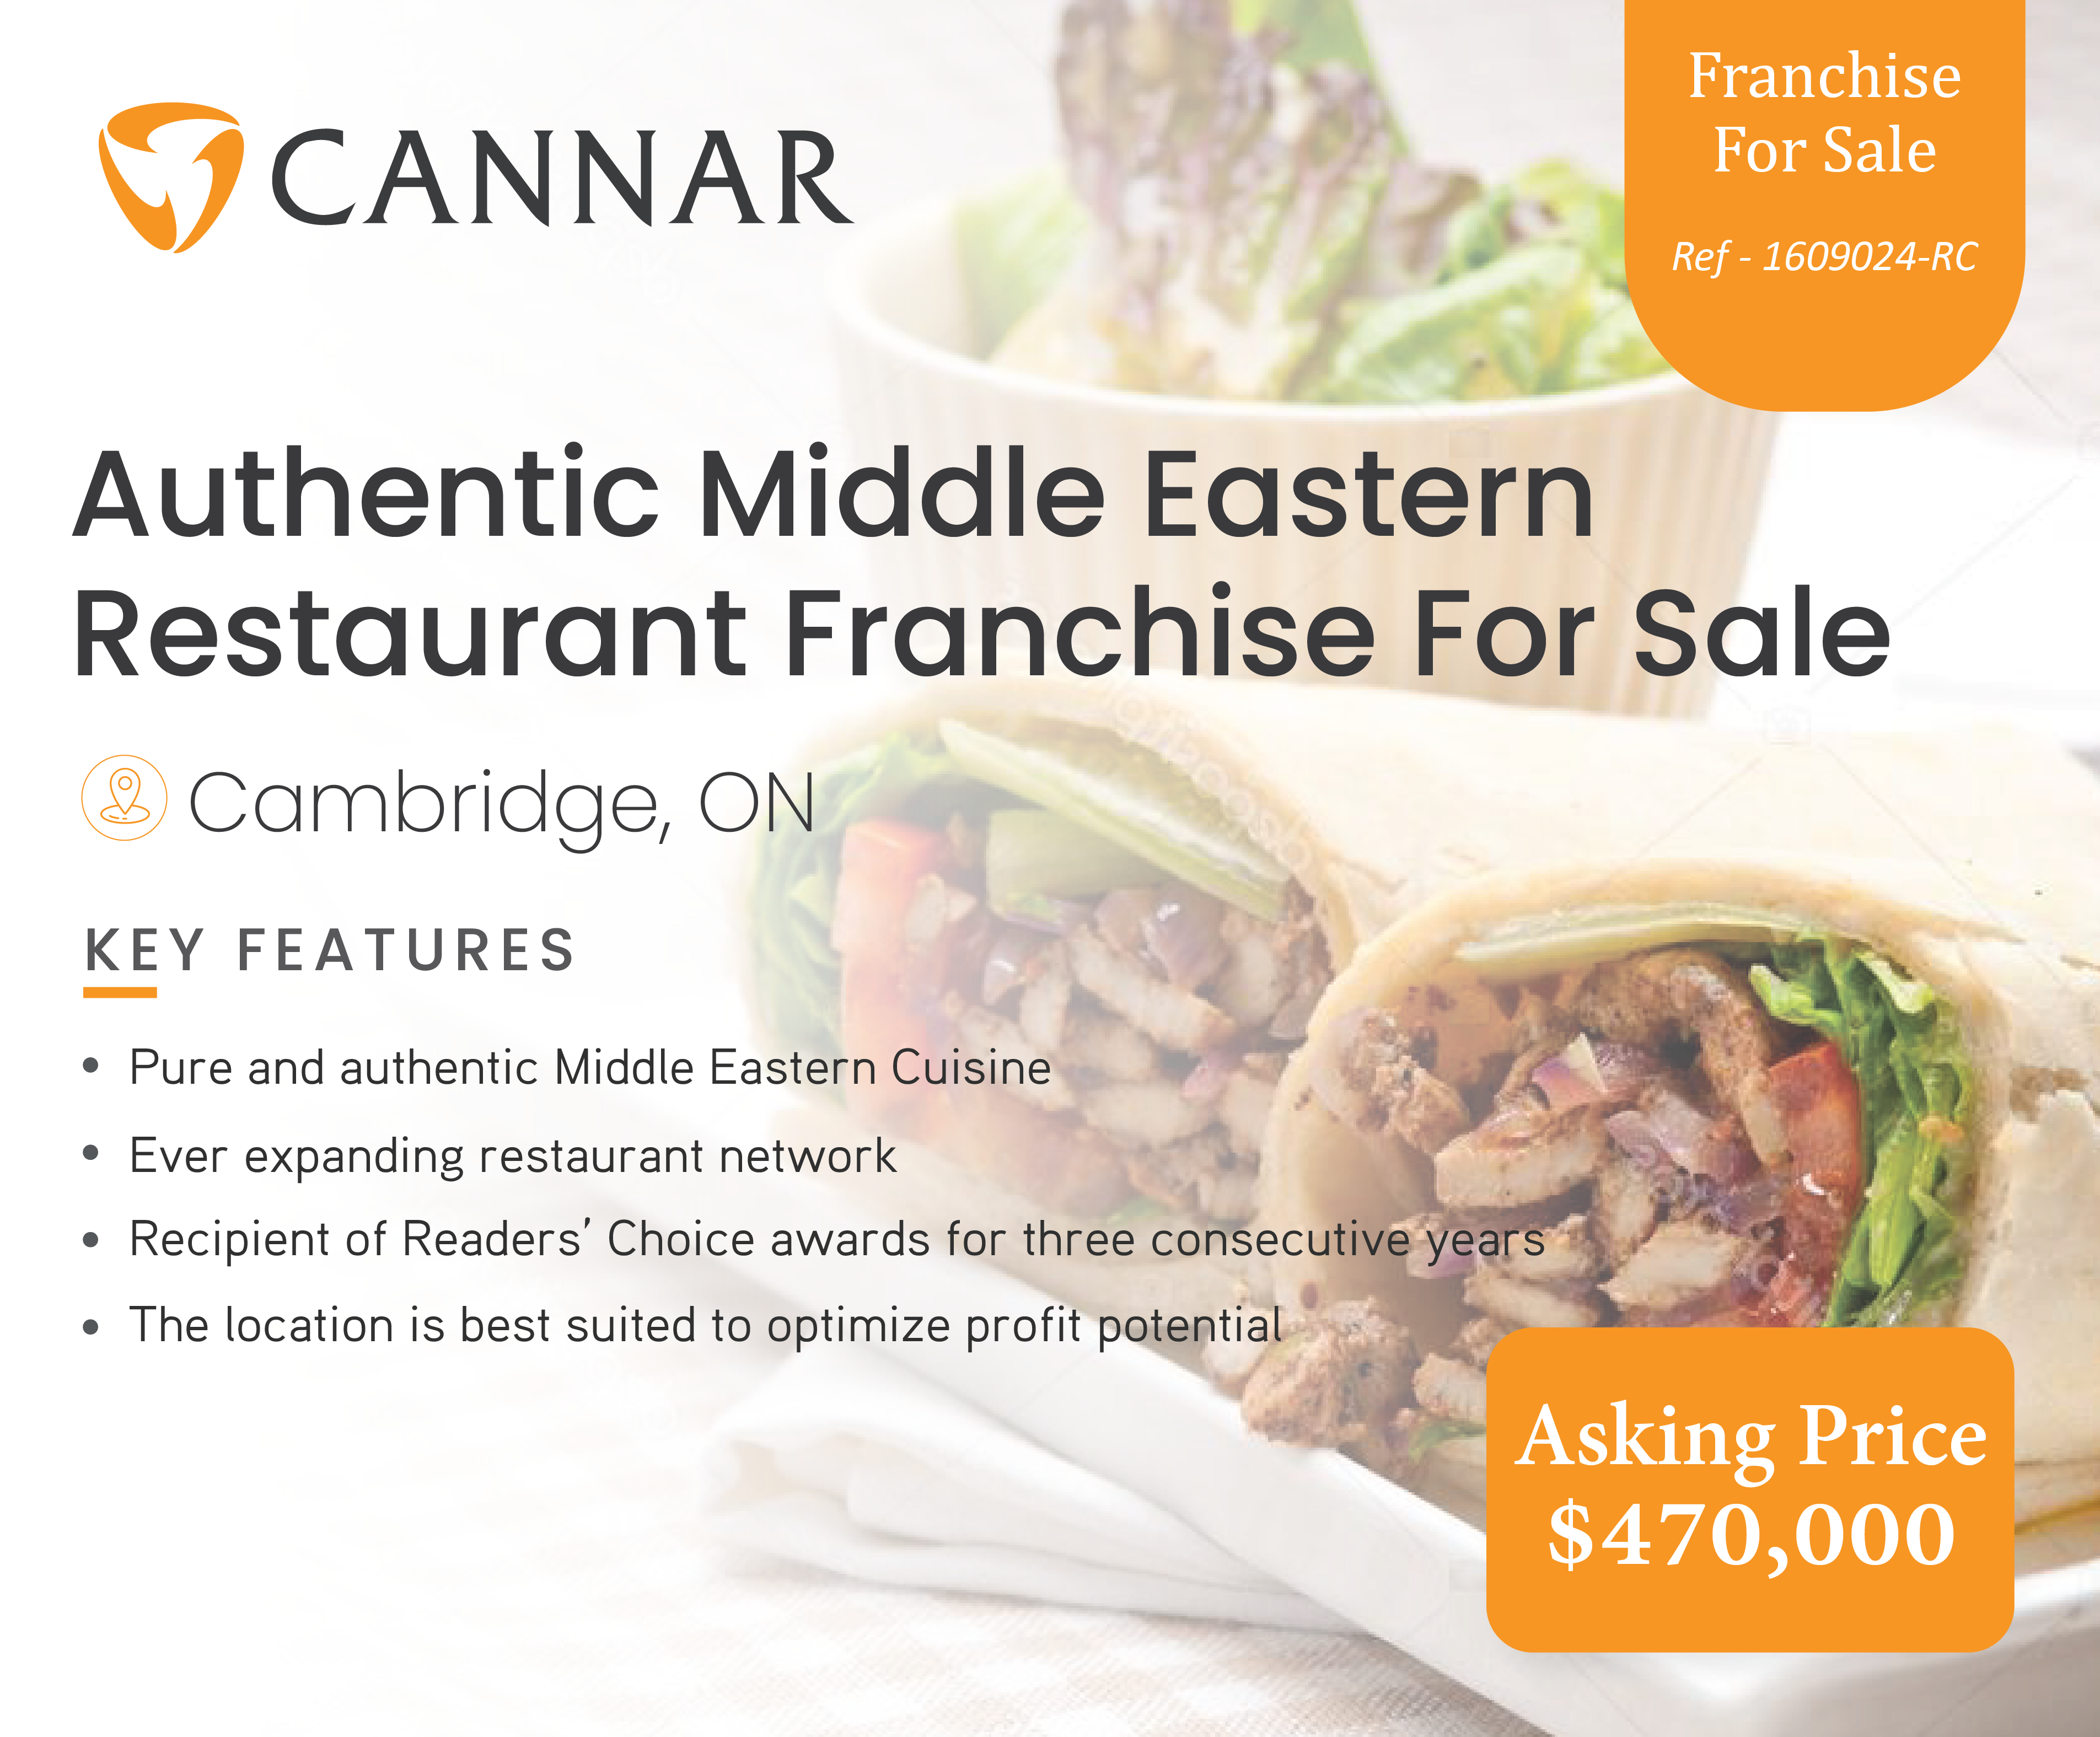 Authentic Middle Eastern Restaurant Franchise For Sale In Cambridge, ON